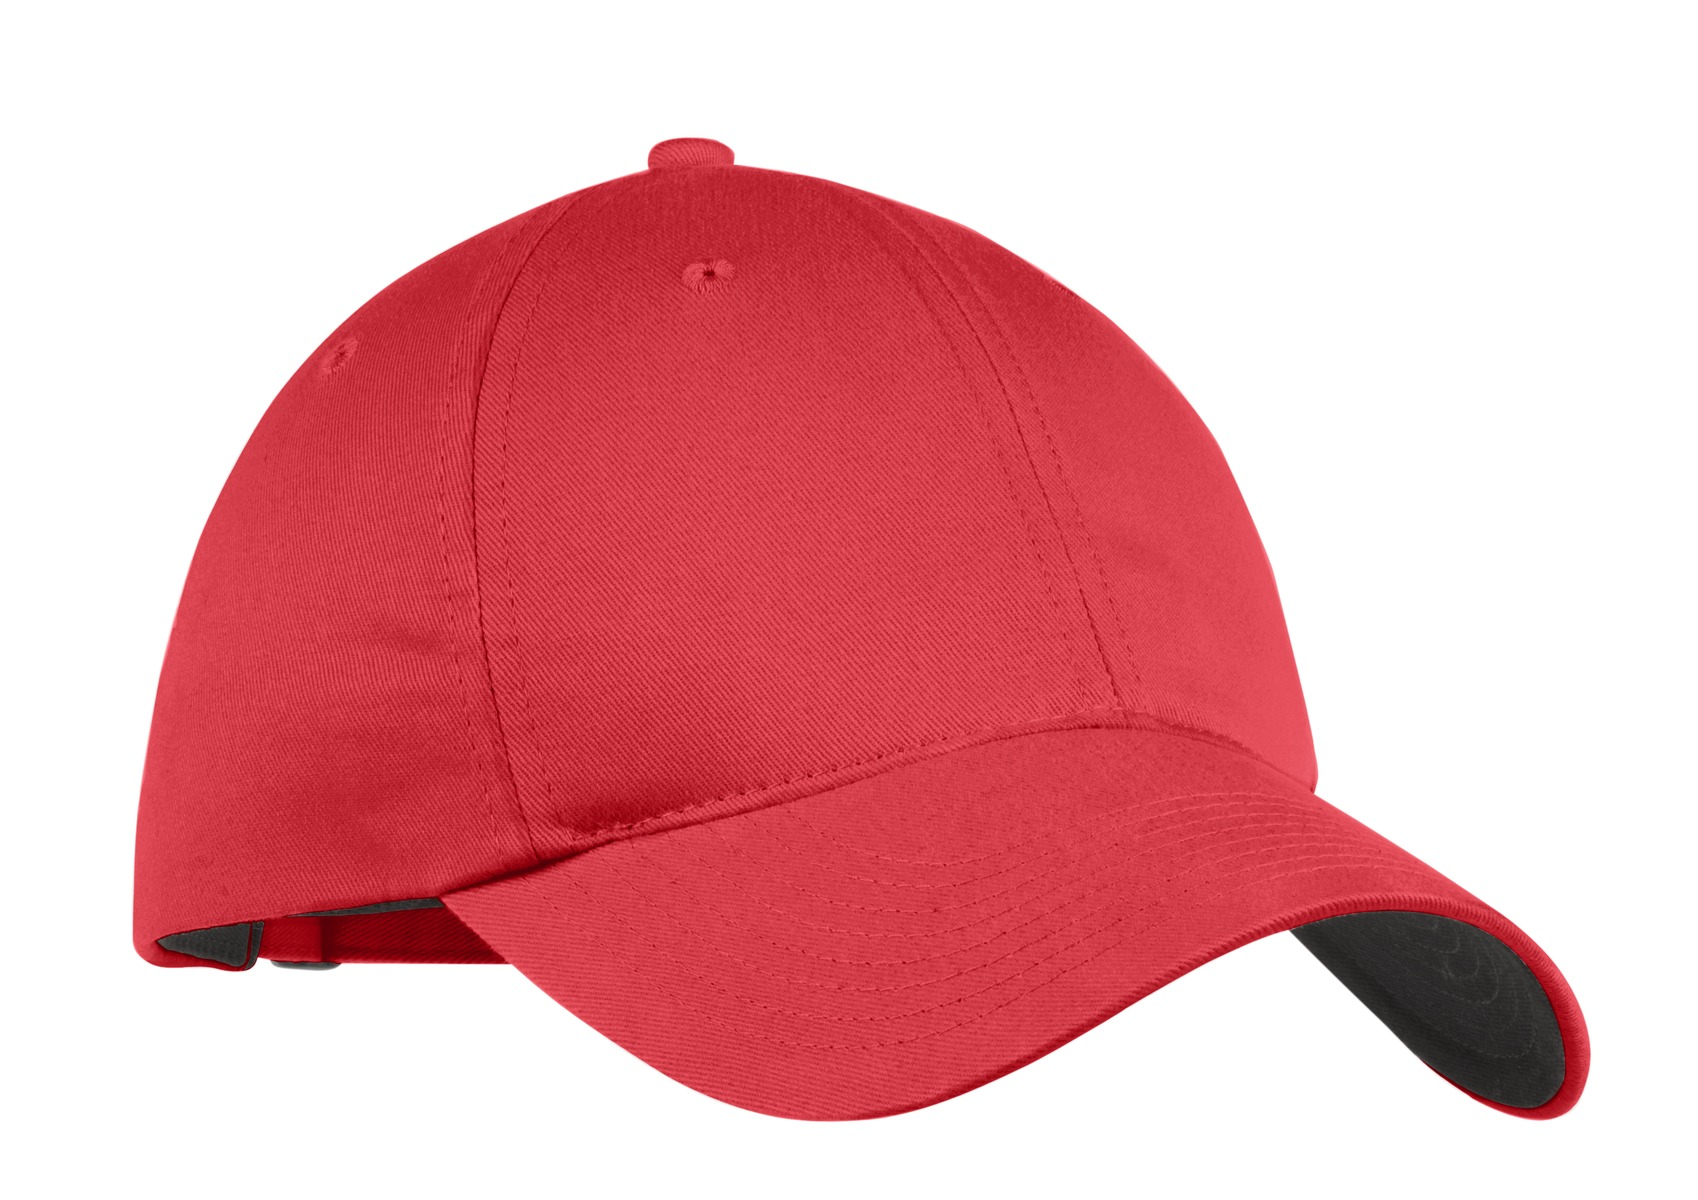 Nike Unstructured Twill Cap.  580087 - Gym Red